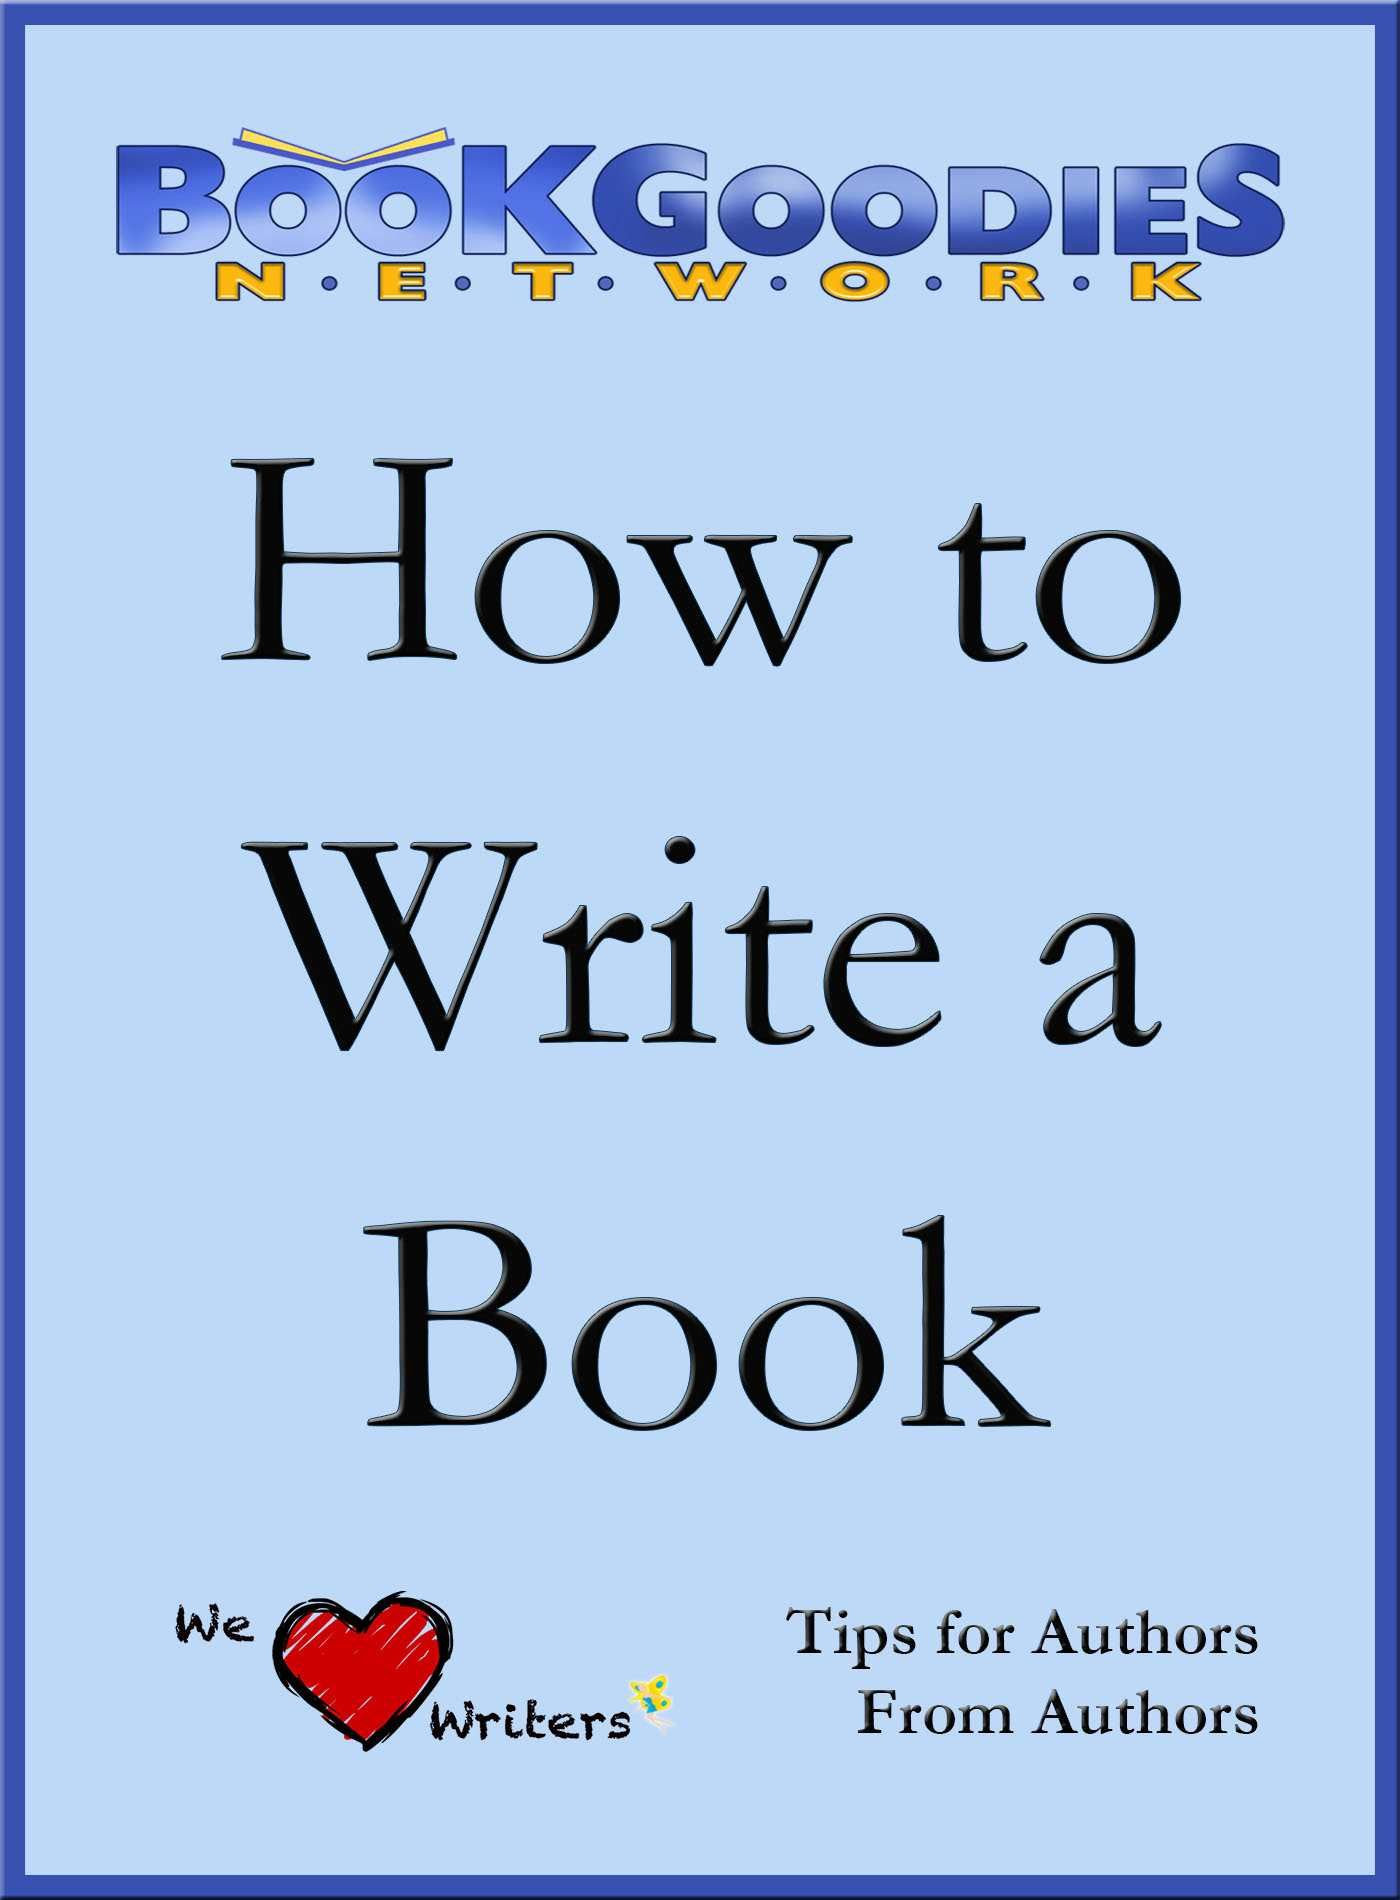 how to write a book tips from authors for authors about